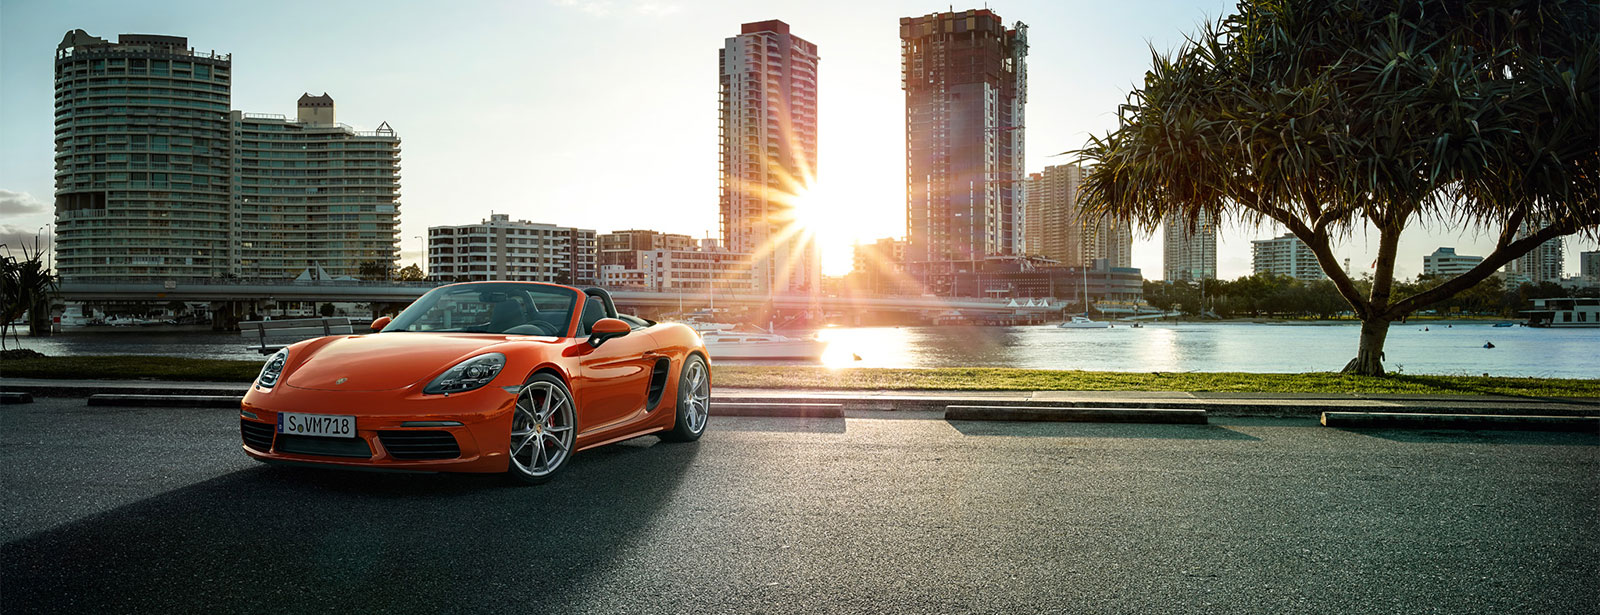 Leasingangebote | 718 Boxster S